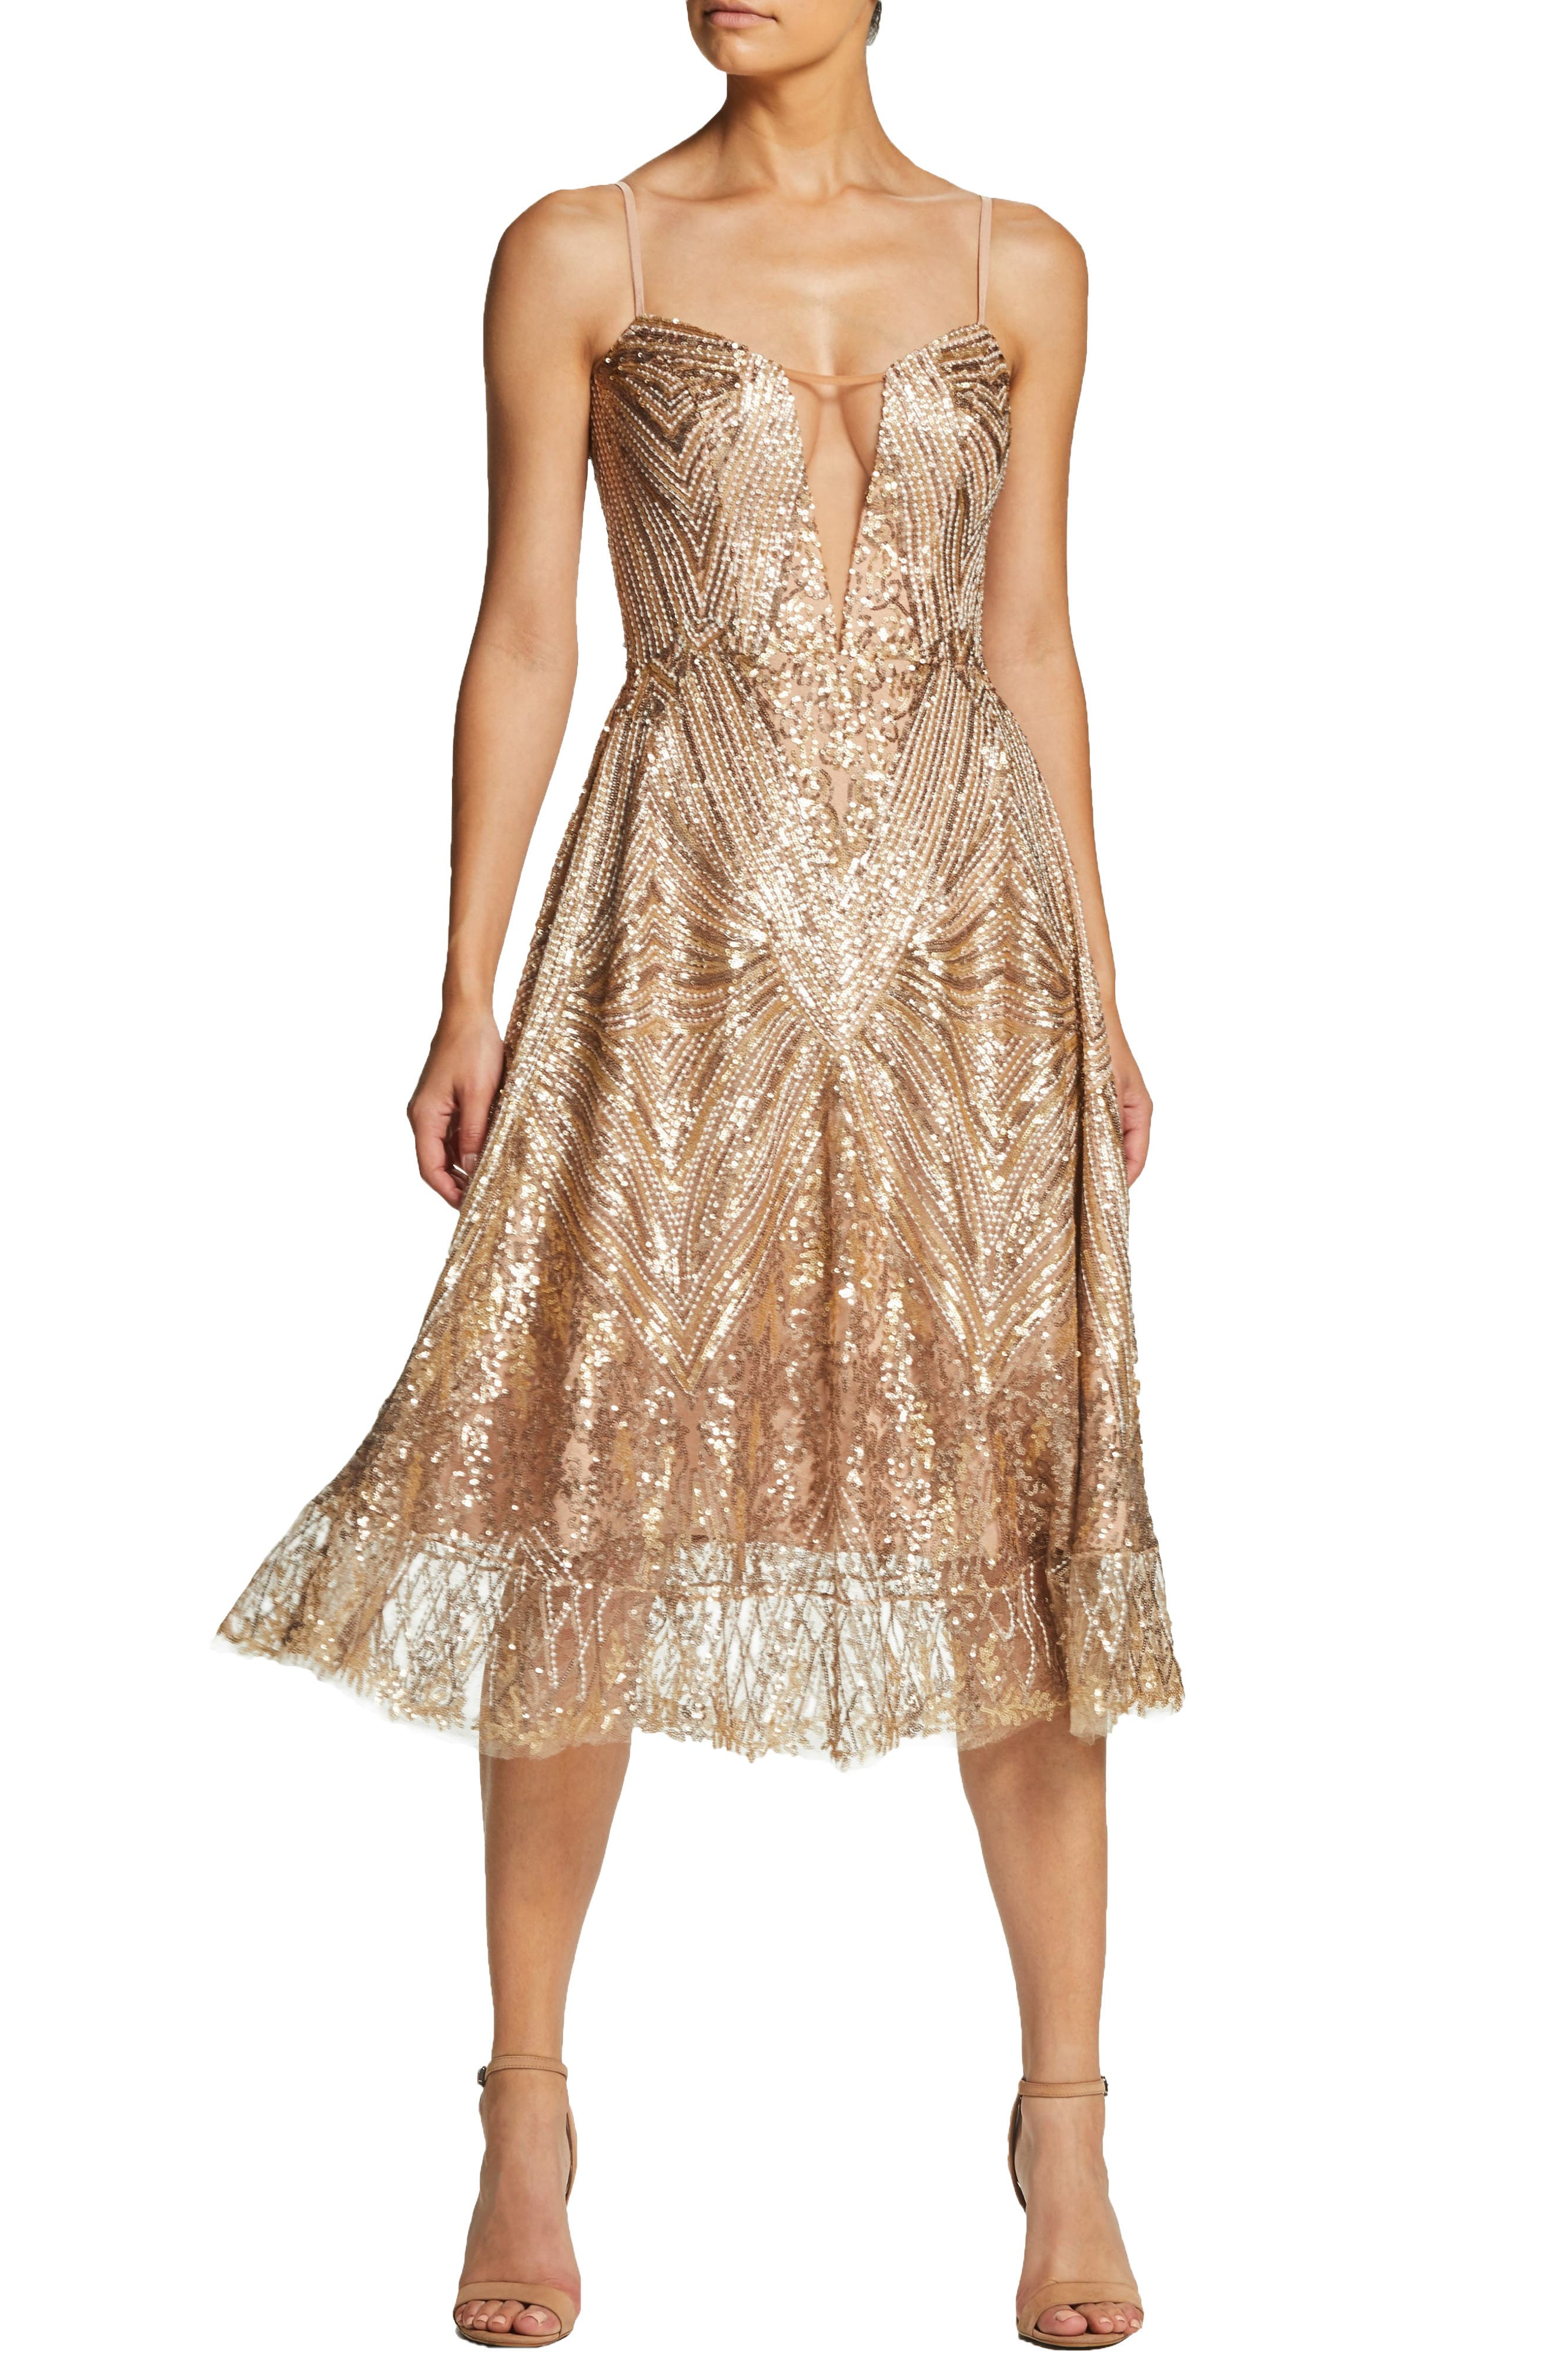 Sarah Sequin Strapless Fit & Flare Dress in Gold/ Brass